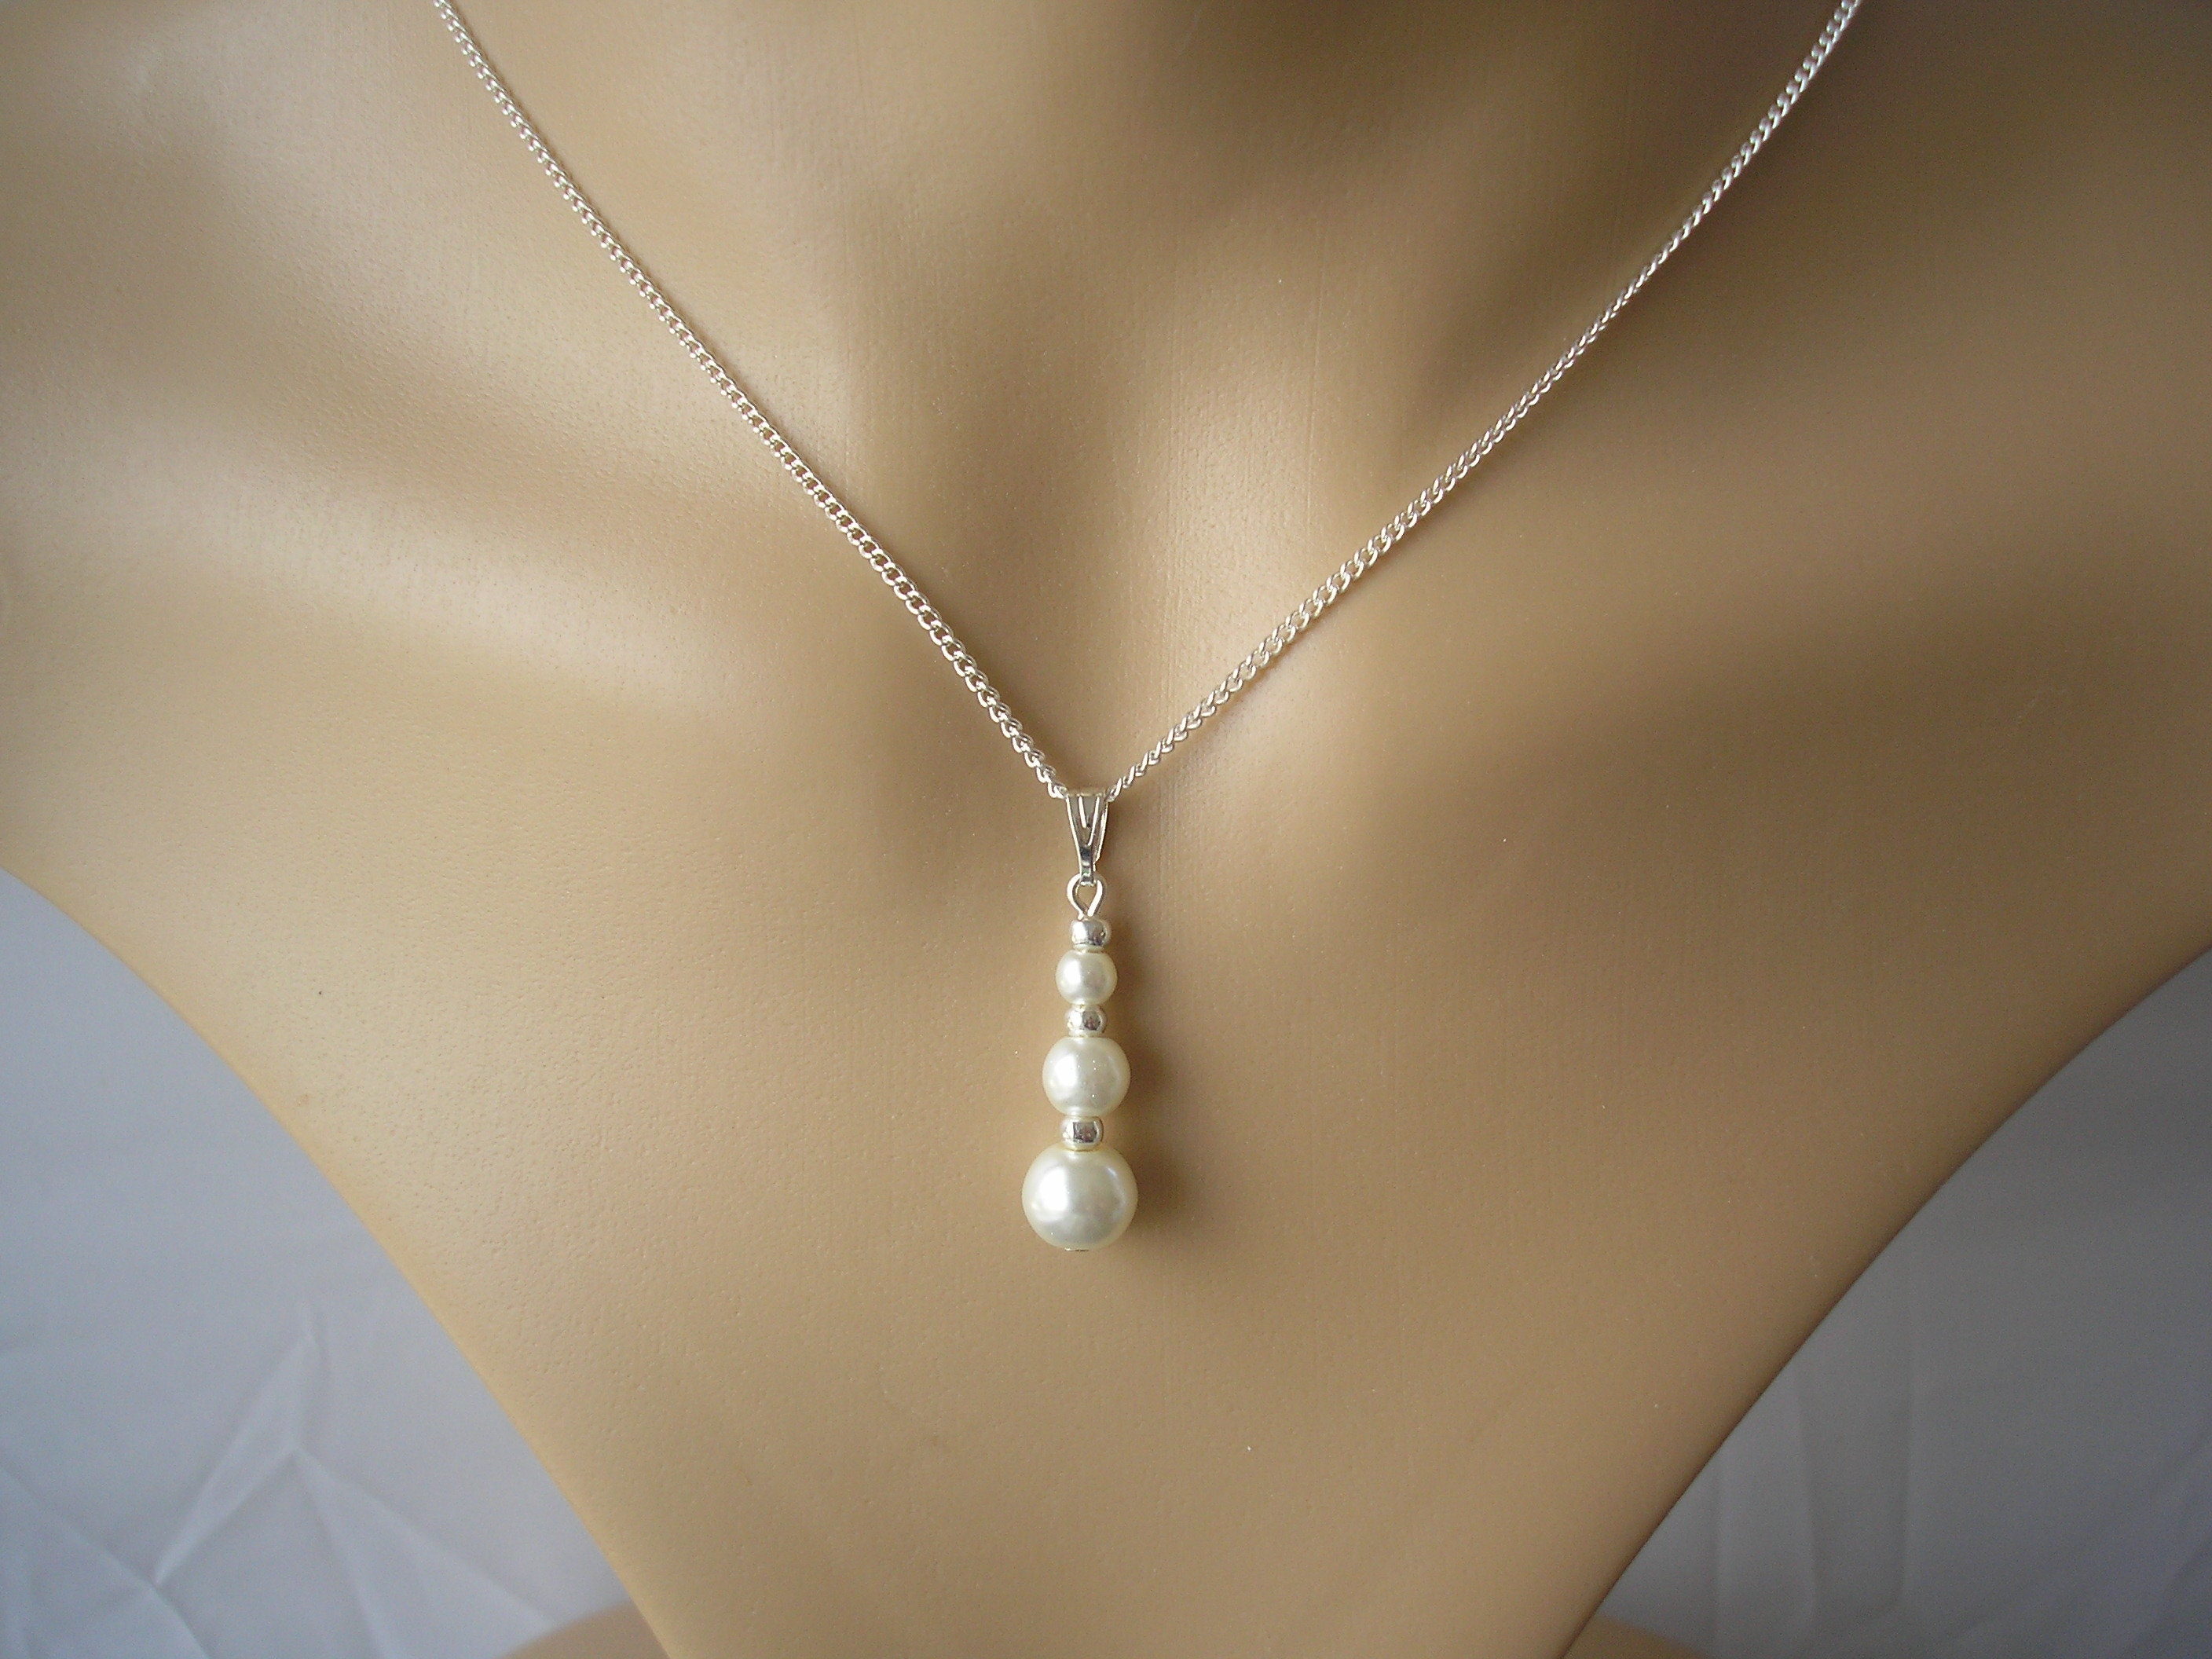 Dainty Graduated Pearl Drop Necklace, Ladies Faux Pearl Pendant Necklace,  Long Drop Silver Chain Necklaces for Women Brides Bridesmaids gift